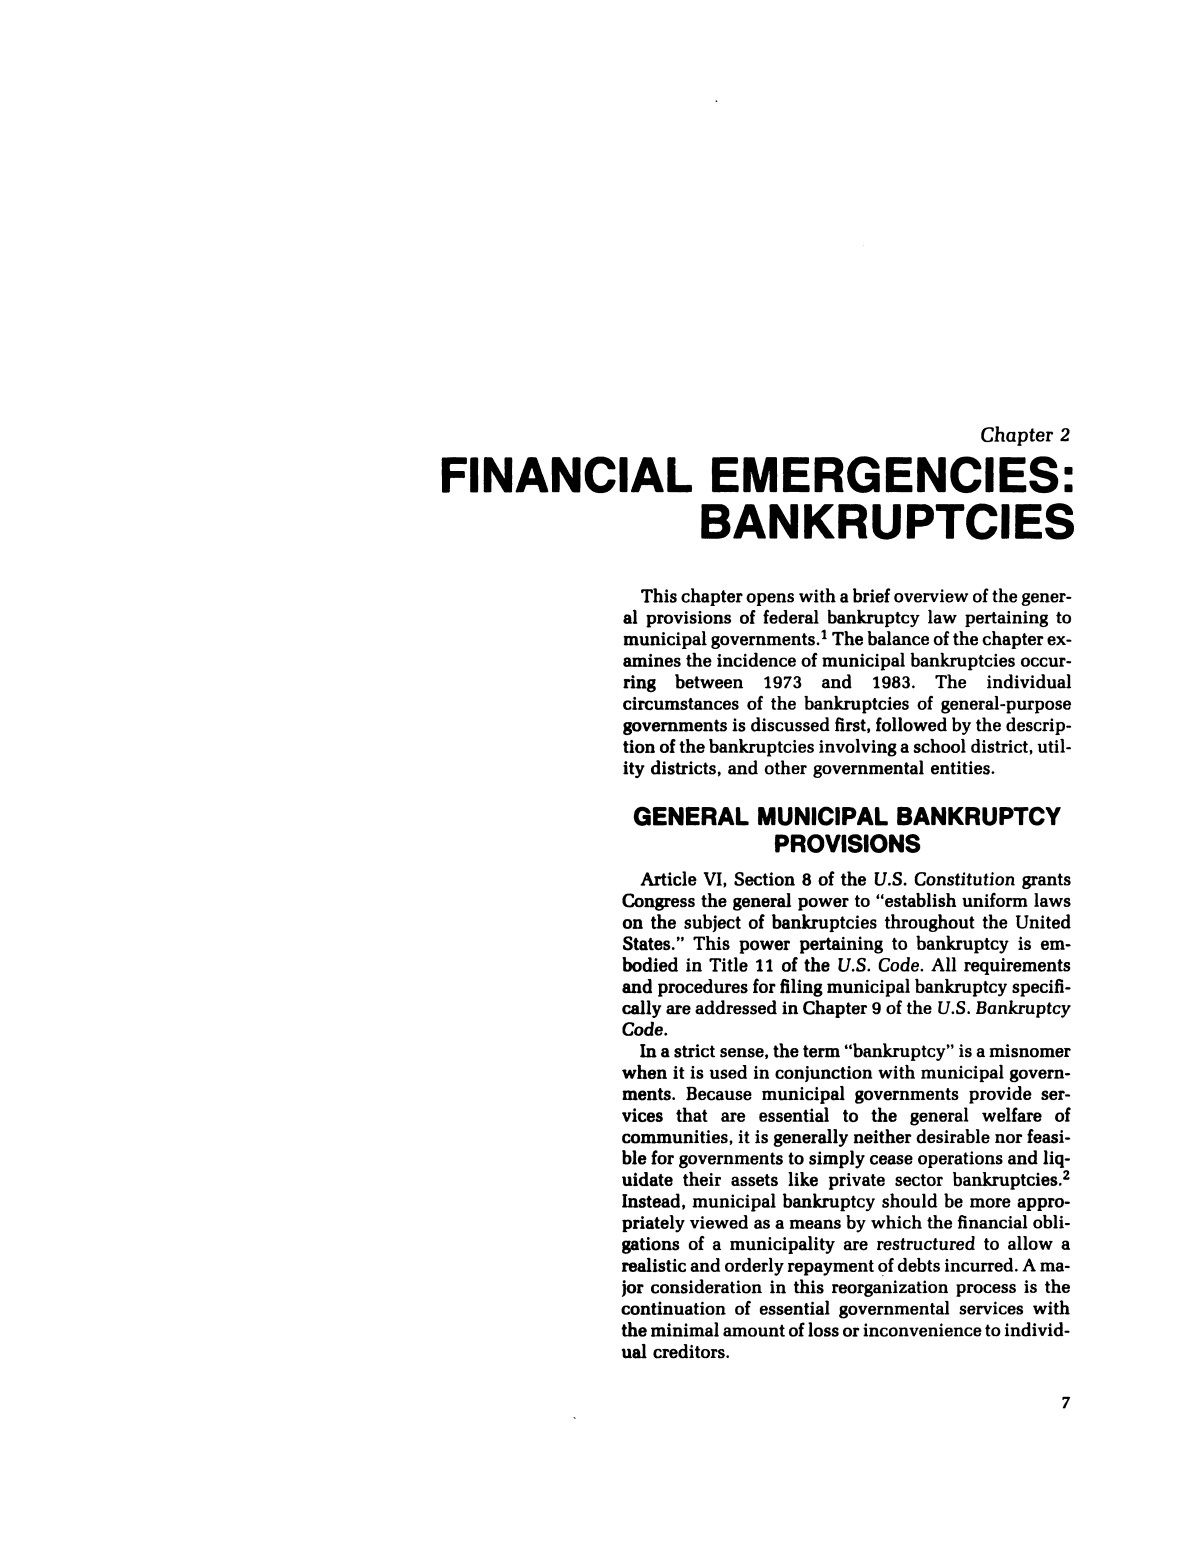 Bankruptcies, defaults, and other local government financial emergencies                                                                                                      7